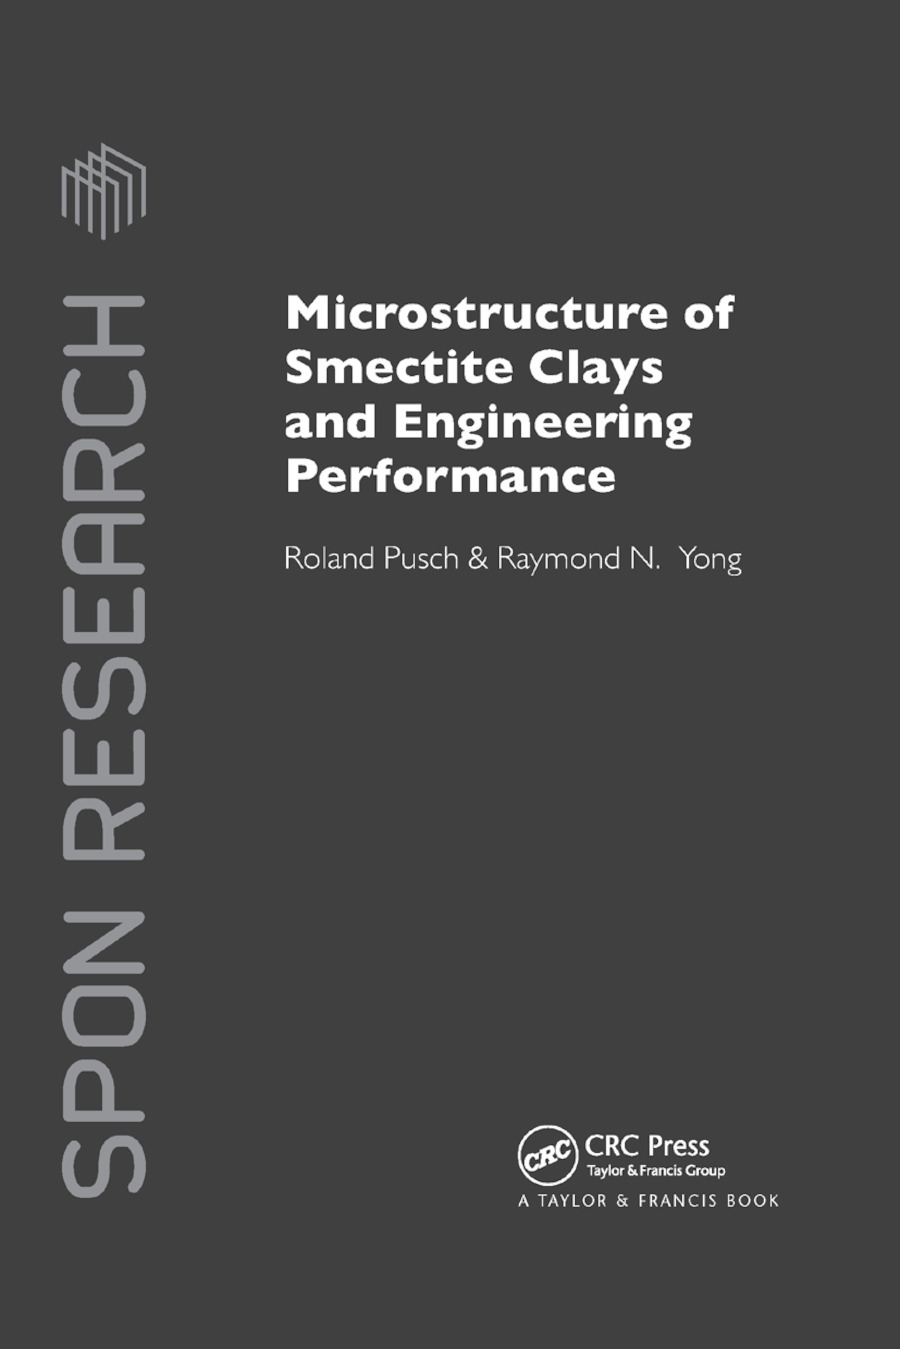 Microstructure of Smectite Clays and Engineering Performance: 1st Edition (Paperback) book cover